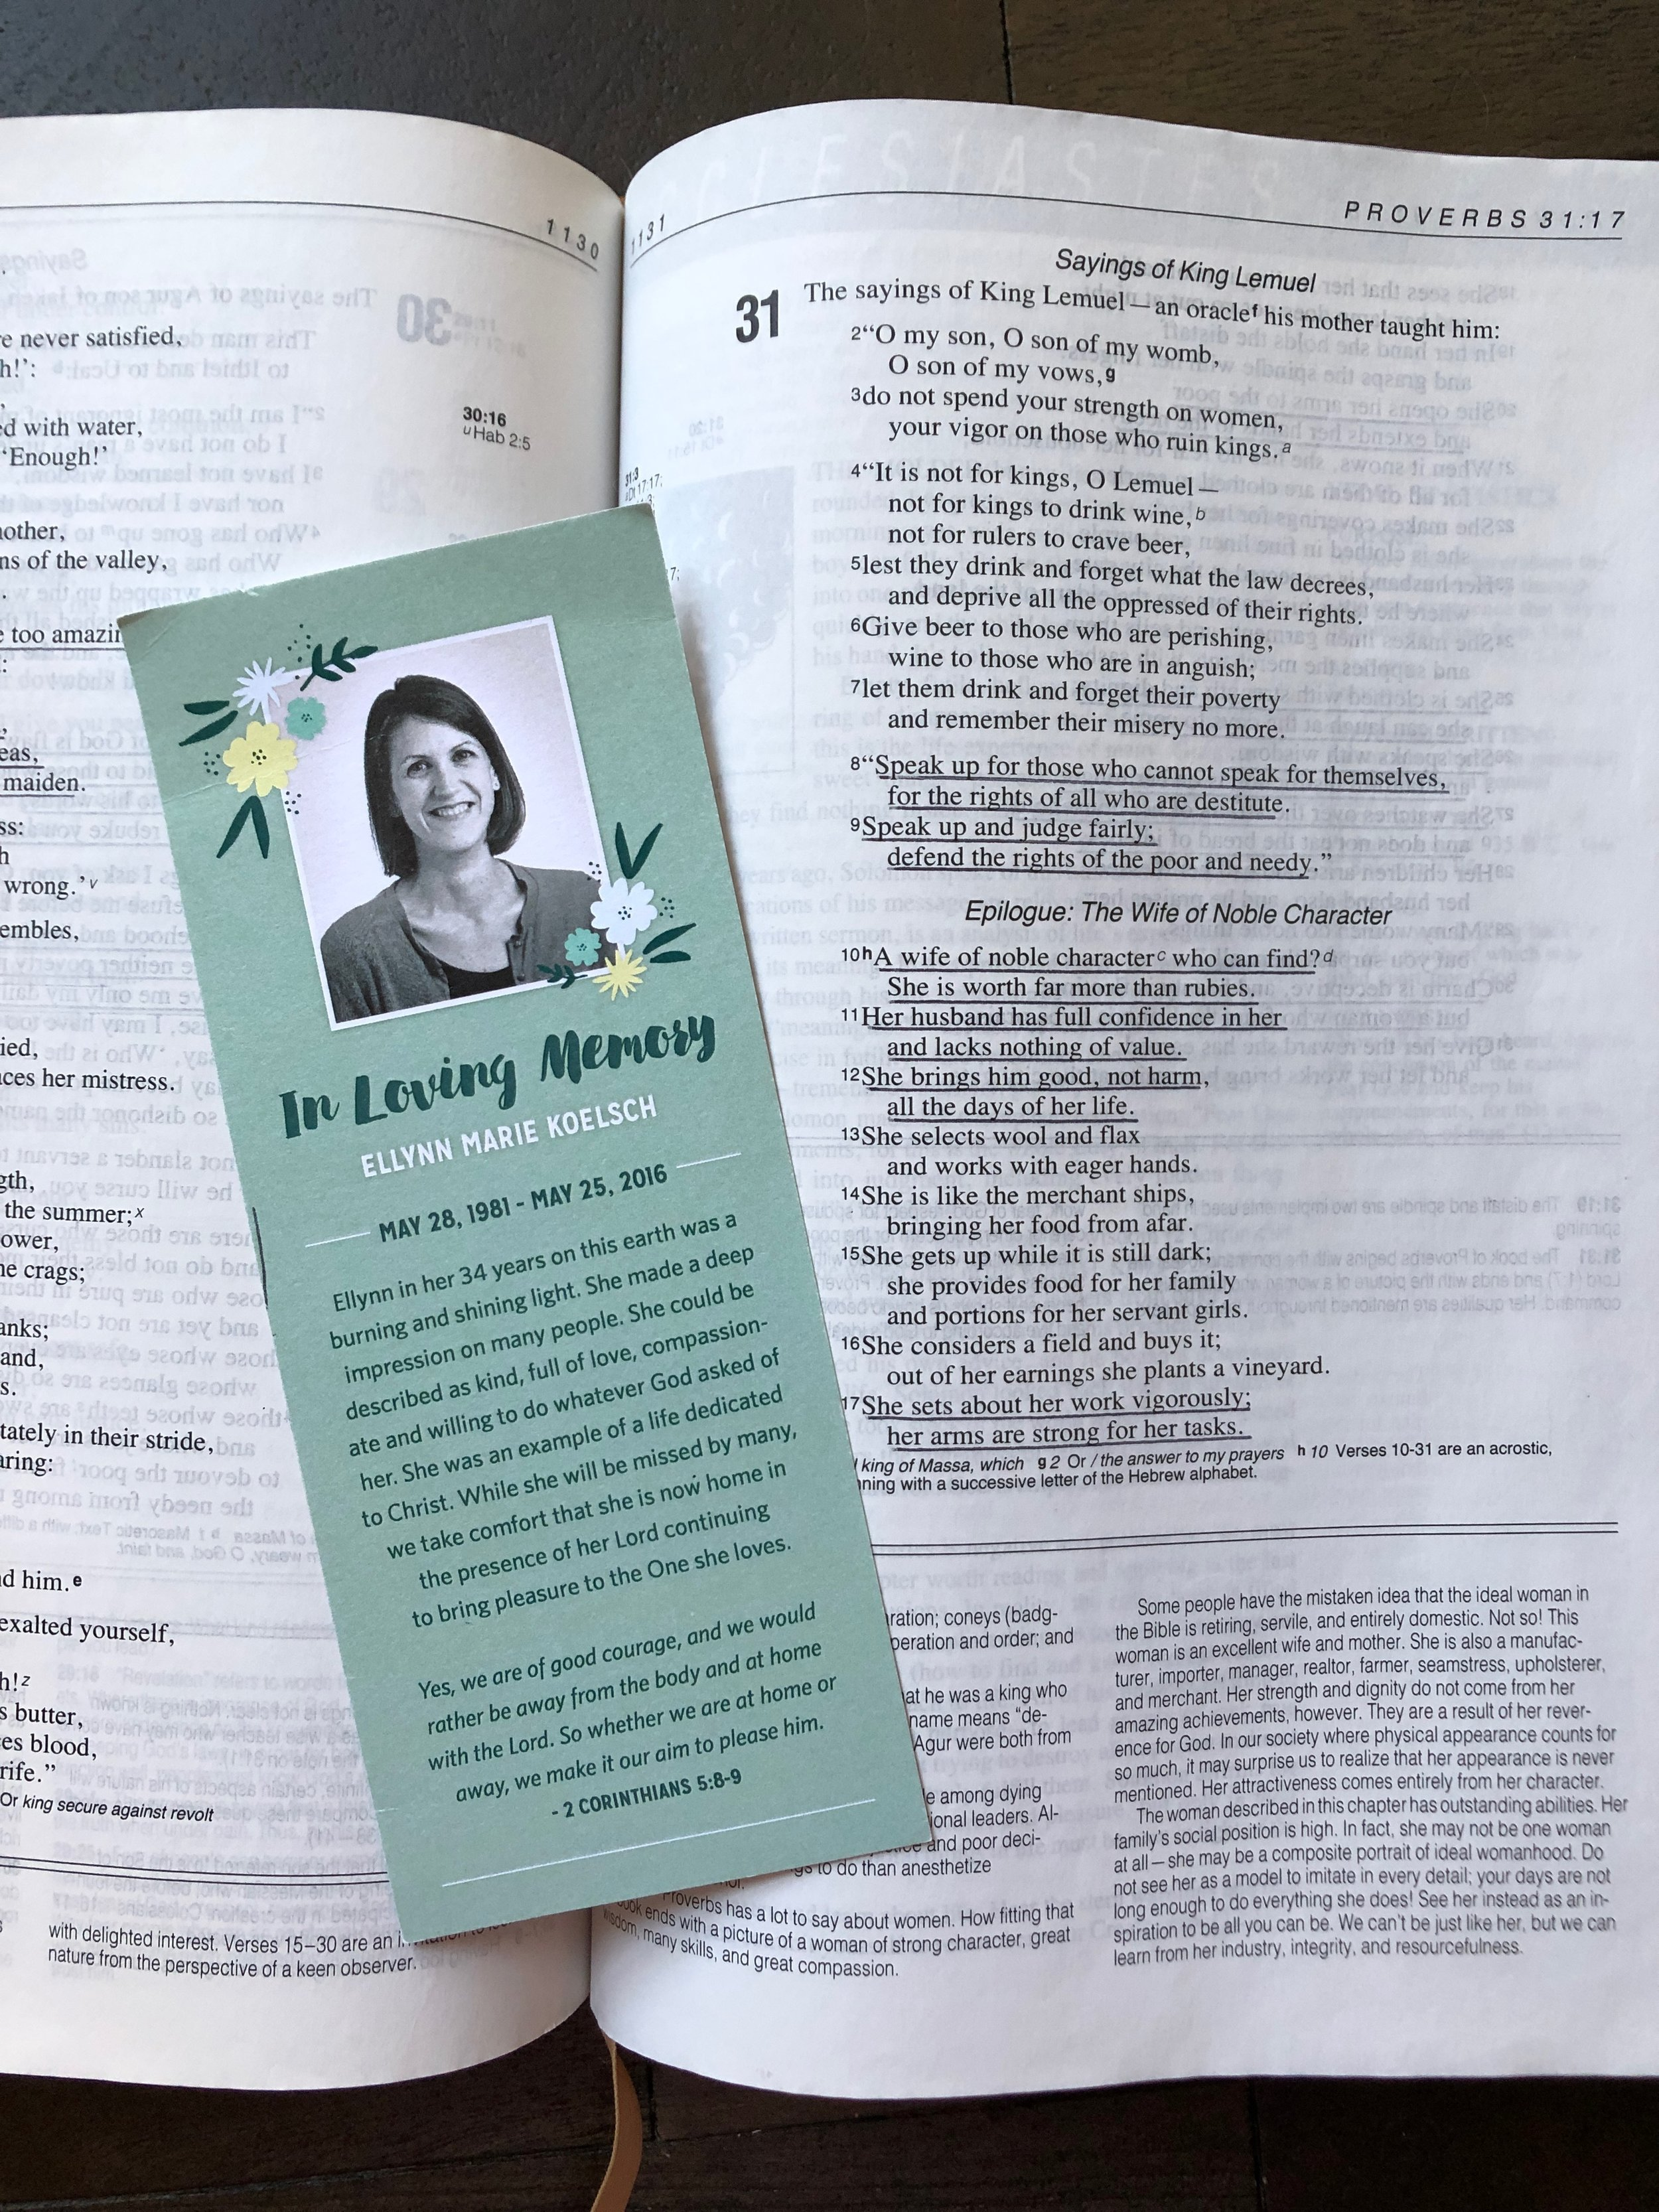 This is the bookmark that was handed out at Renaissance church at Ellynn's memorial service in Providence, Rhode Island. I keep it in my bible and think about Ellynn nearly every day.